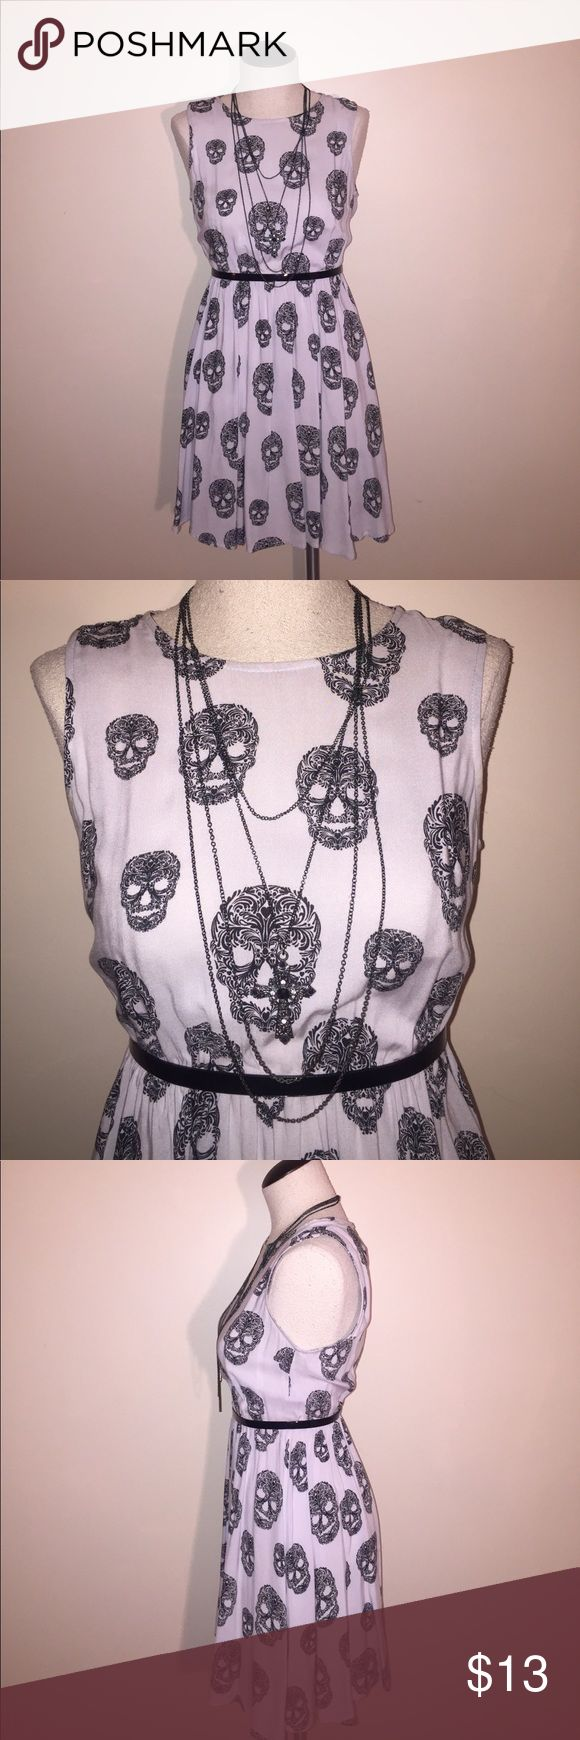 H&M Black and Gray Sugar Skull Dress Size 4 Light weight and comfy this dress can be worn all year round super versatile by itself in the summer or with tights and a cardigan in the fall! H&M only worn a few times excellent condition size 4! (Belt and necklace not included) H&M Dresses Mini